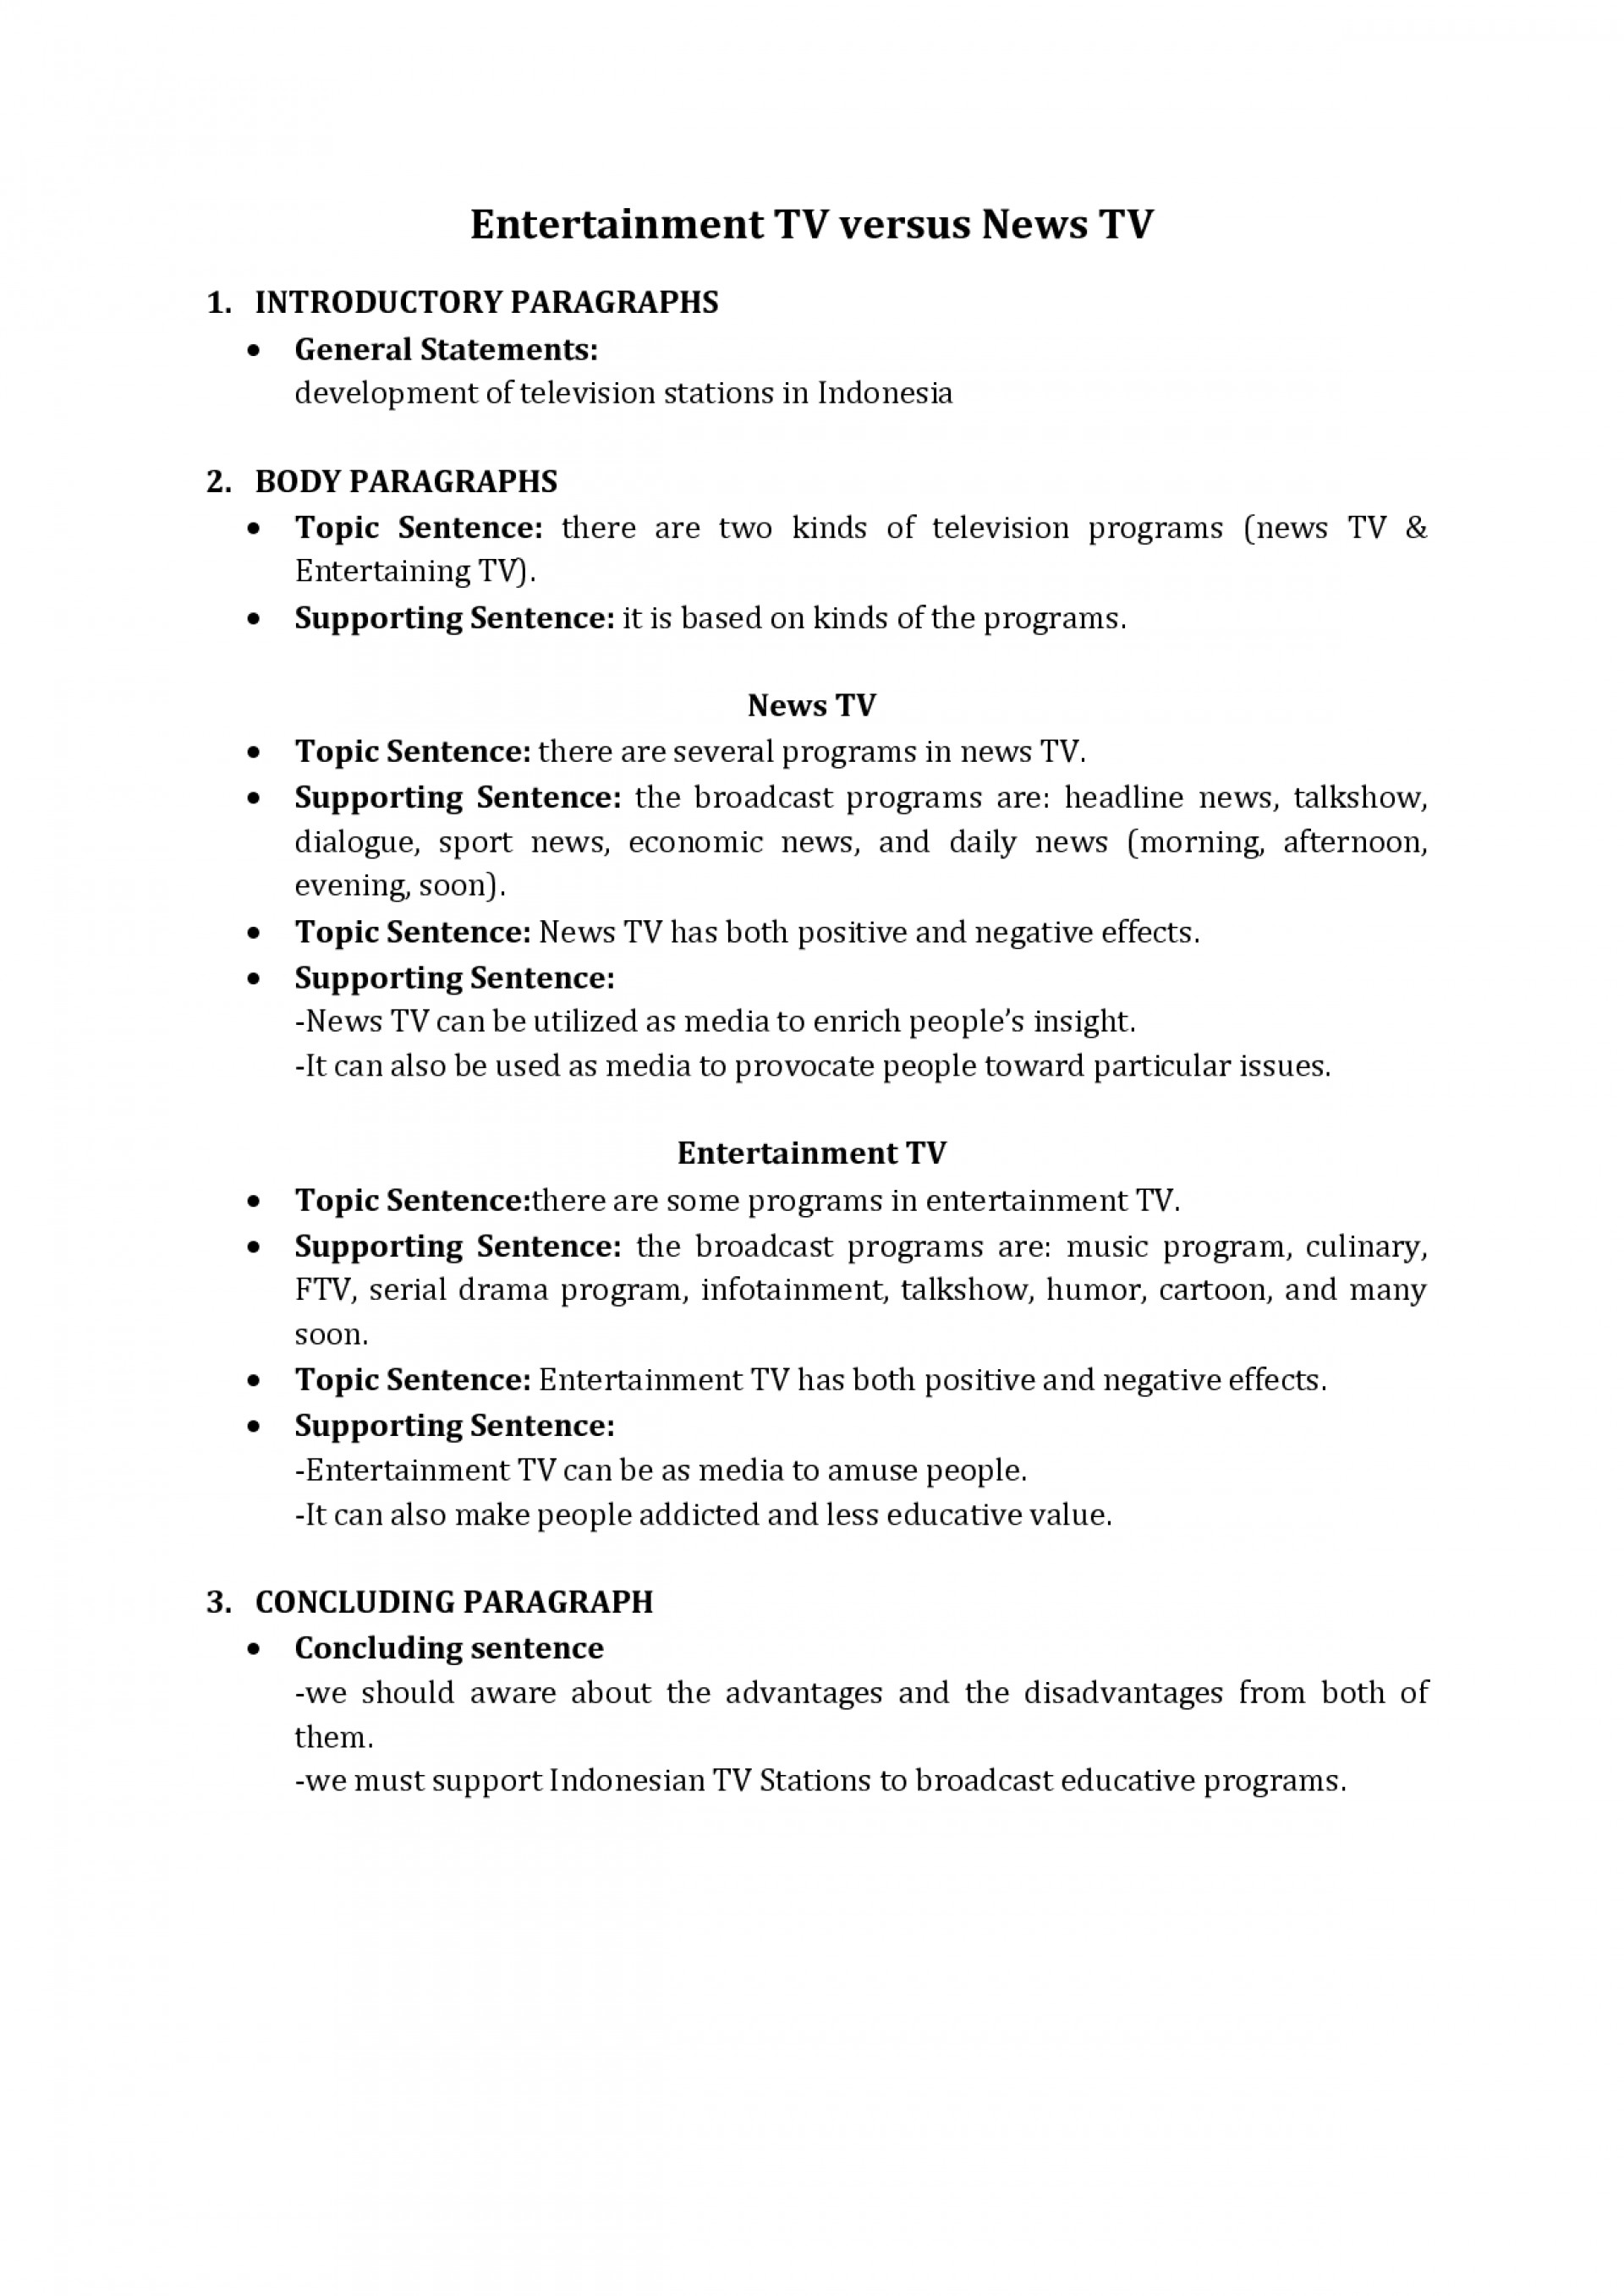 005 Fbunmxinib How To Write An Essay Outline Excellent For University 6th Grade 1920